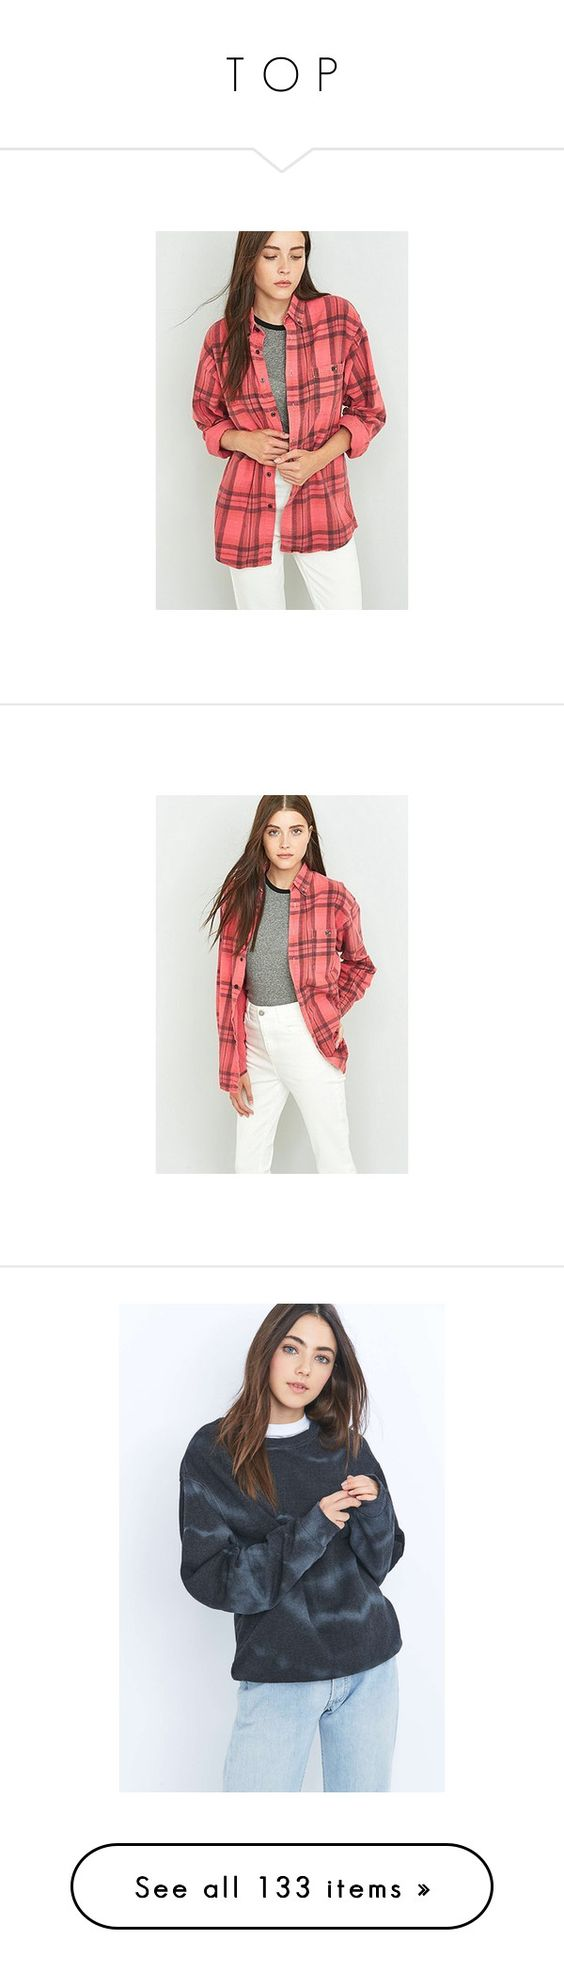 """T O P"" by lion-bar ❤ liked on Polyvore featuring tops, red button down shirt, red flannel shirt, oversized plaid shirt, button up shirts, red plaid shirt, plaid shirts, vintage shirts, plaid button down shirt and white button down shirt"